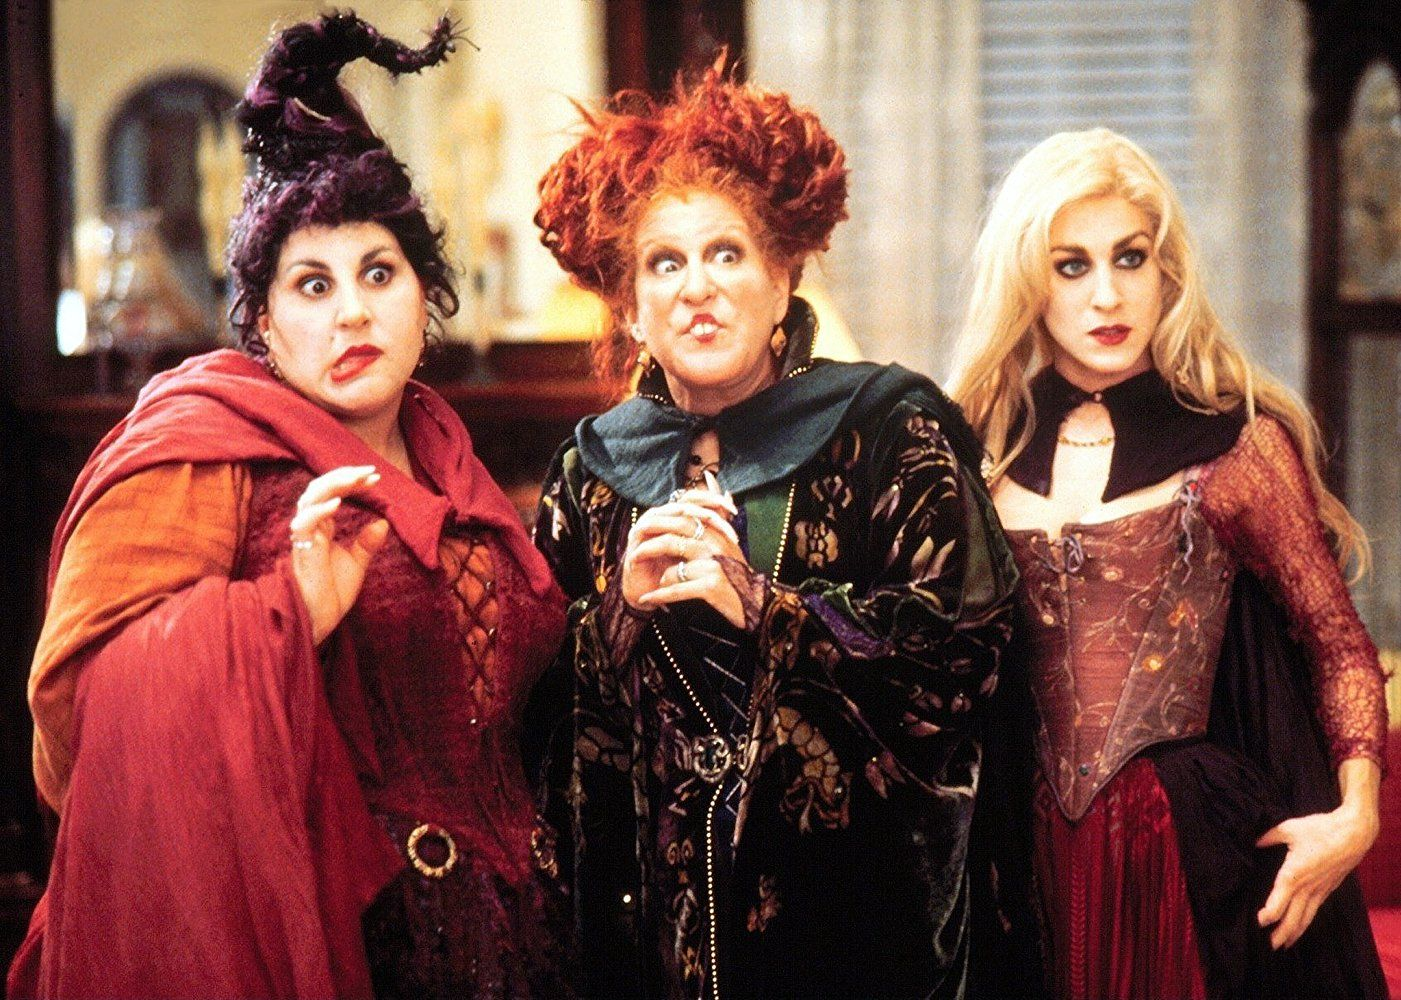 """Photo of the main characters from the film """"Hocus Pocus"""". (Photo courtesy of IMDB)"""